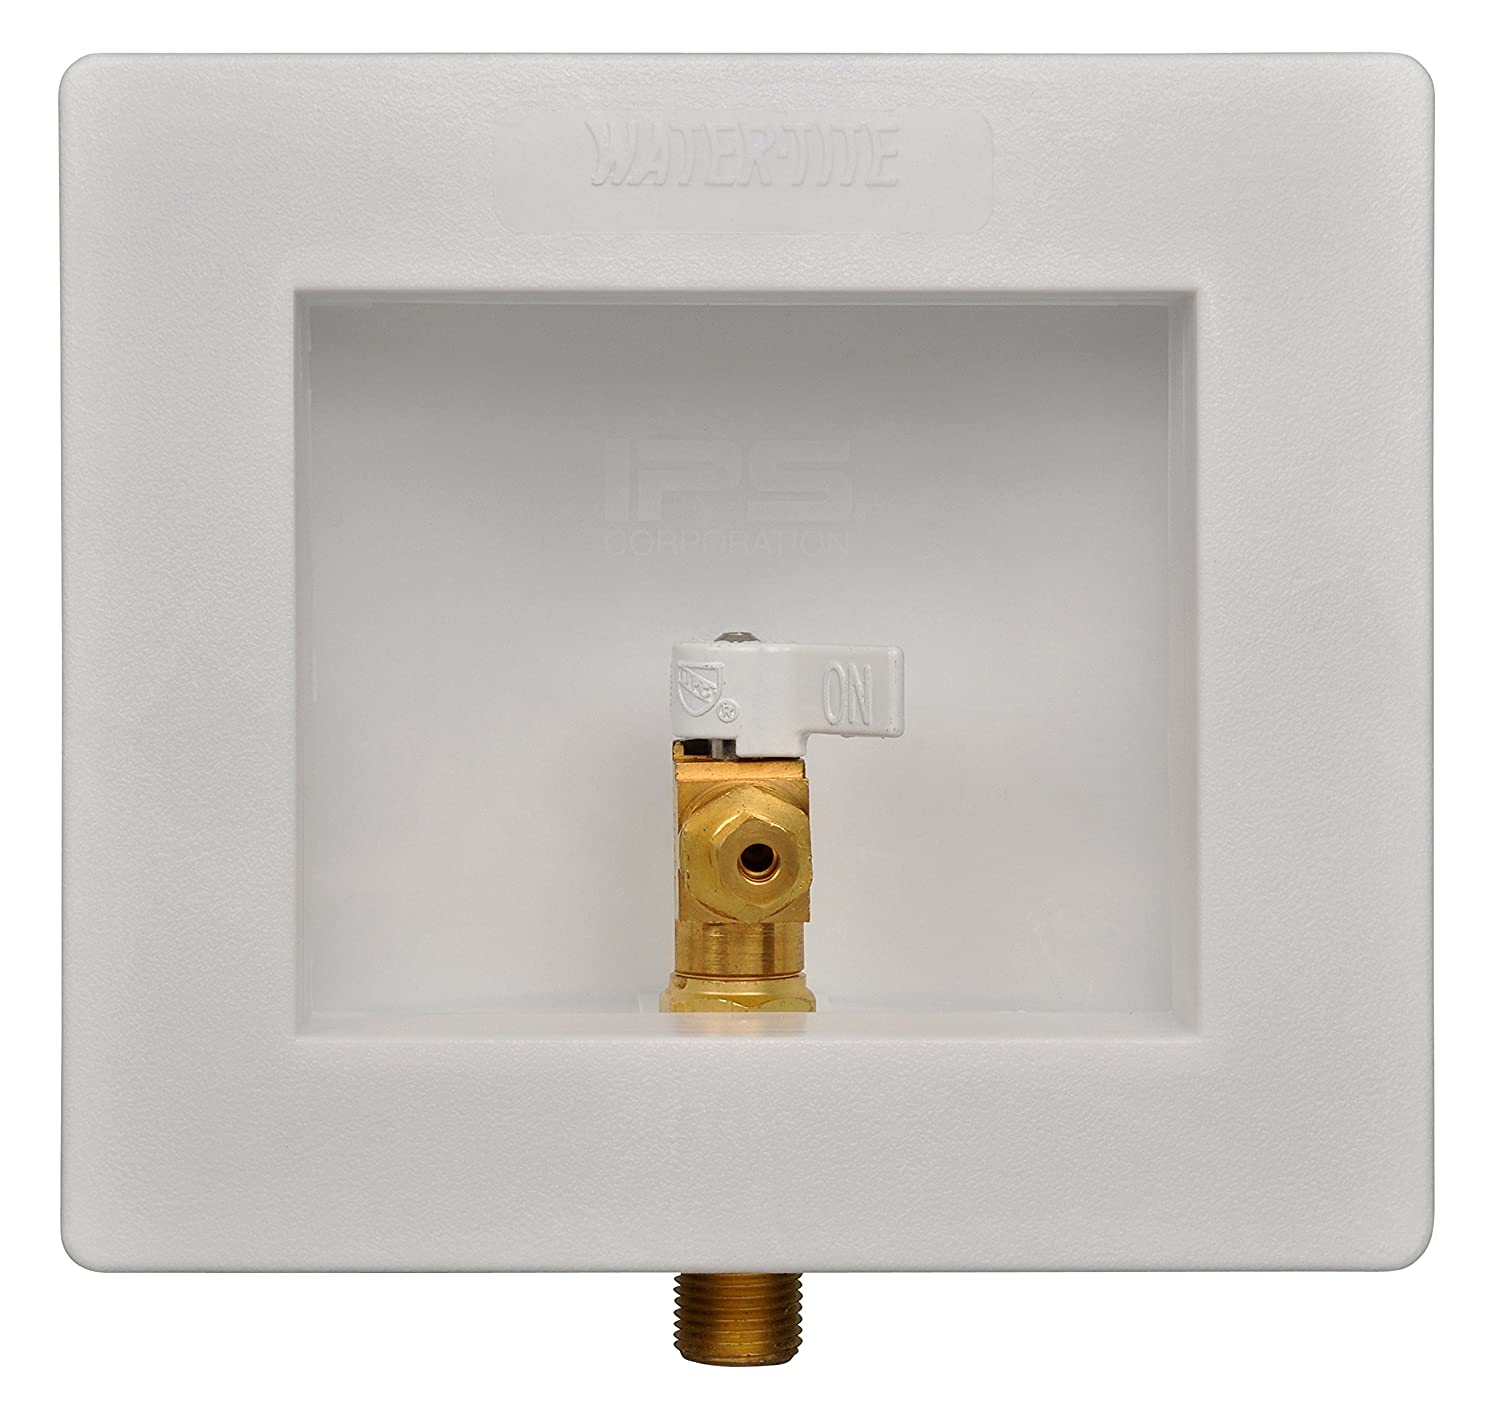 1//2 Viega PF Connection Water-Tite 87952 Plastic Lead-free Ice Maker Outlet Box with Brass Quarter-turn Valve Installed White 1//2 Viega PF Connection IPS Corporation